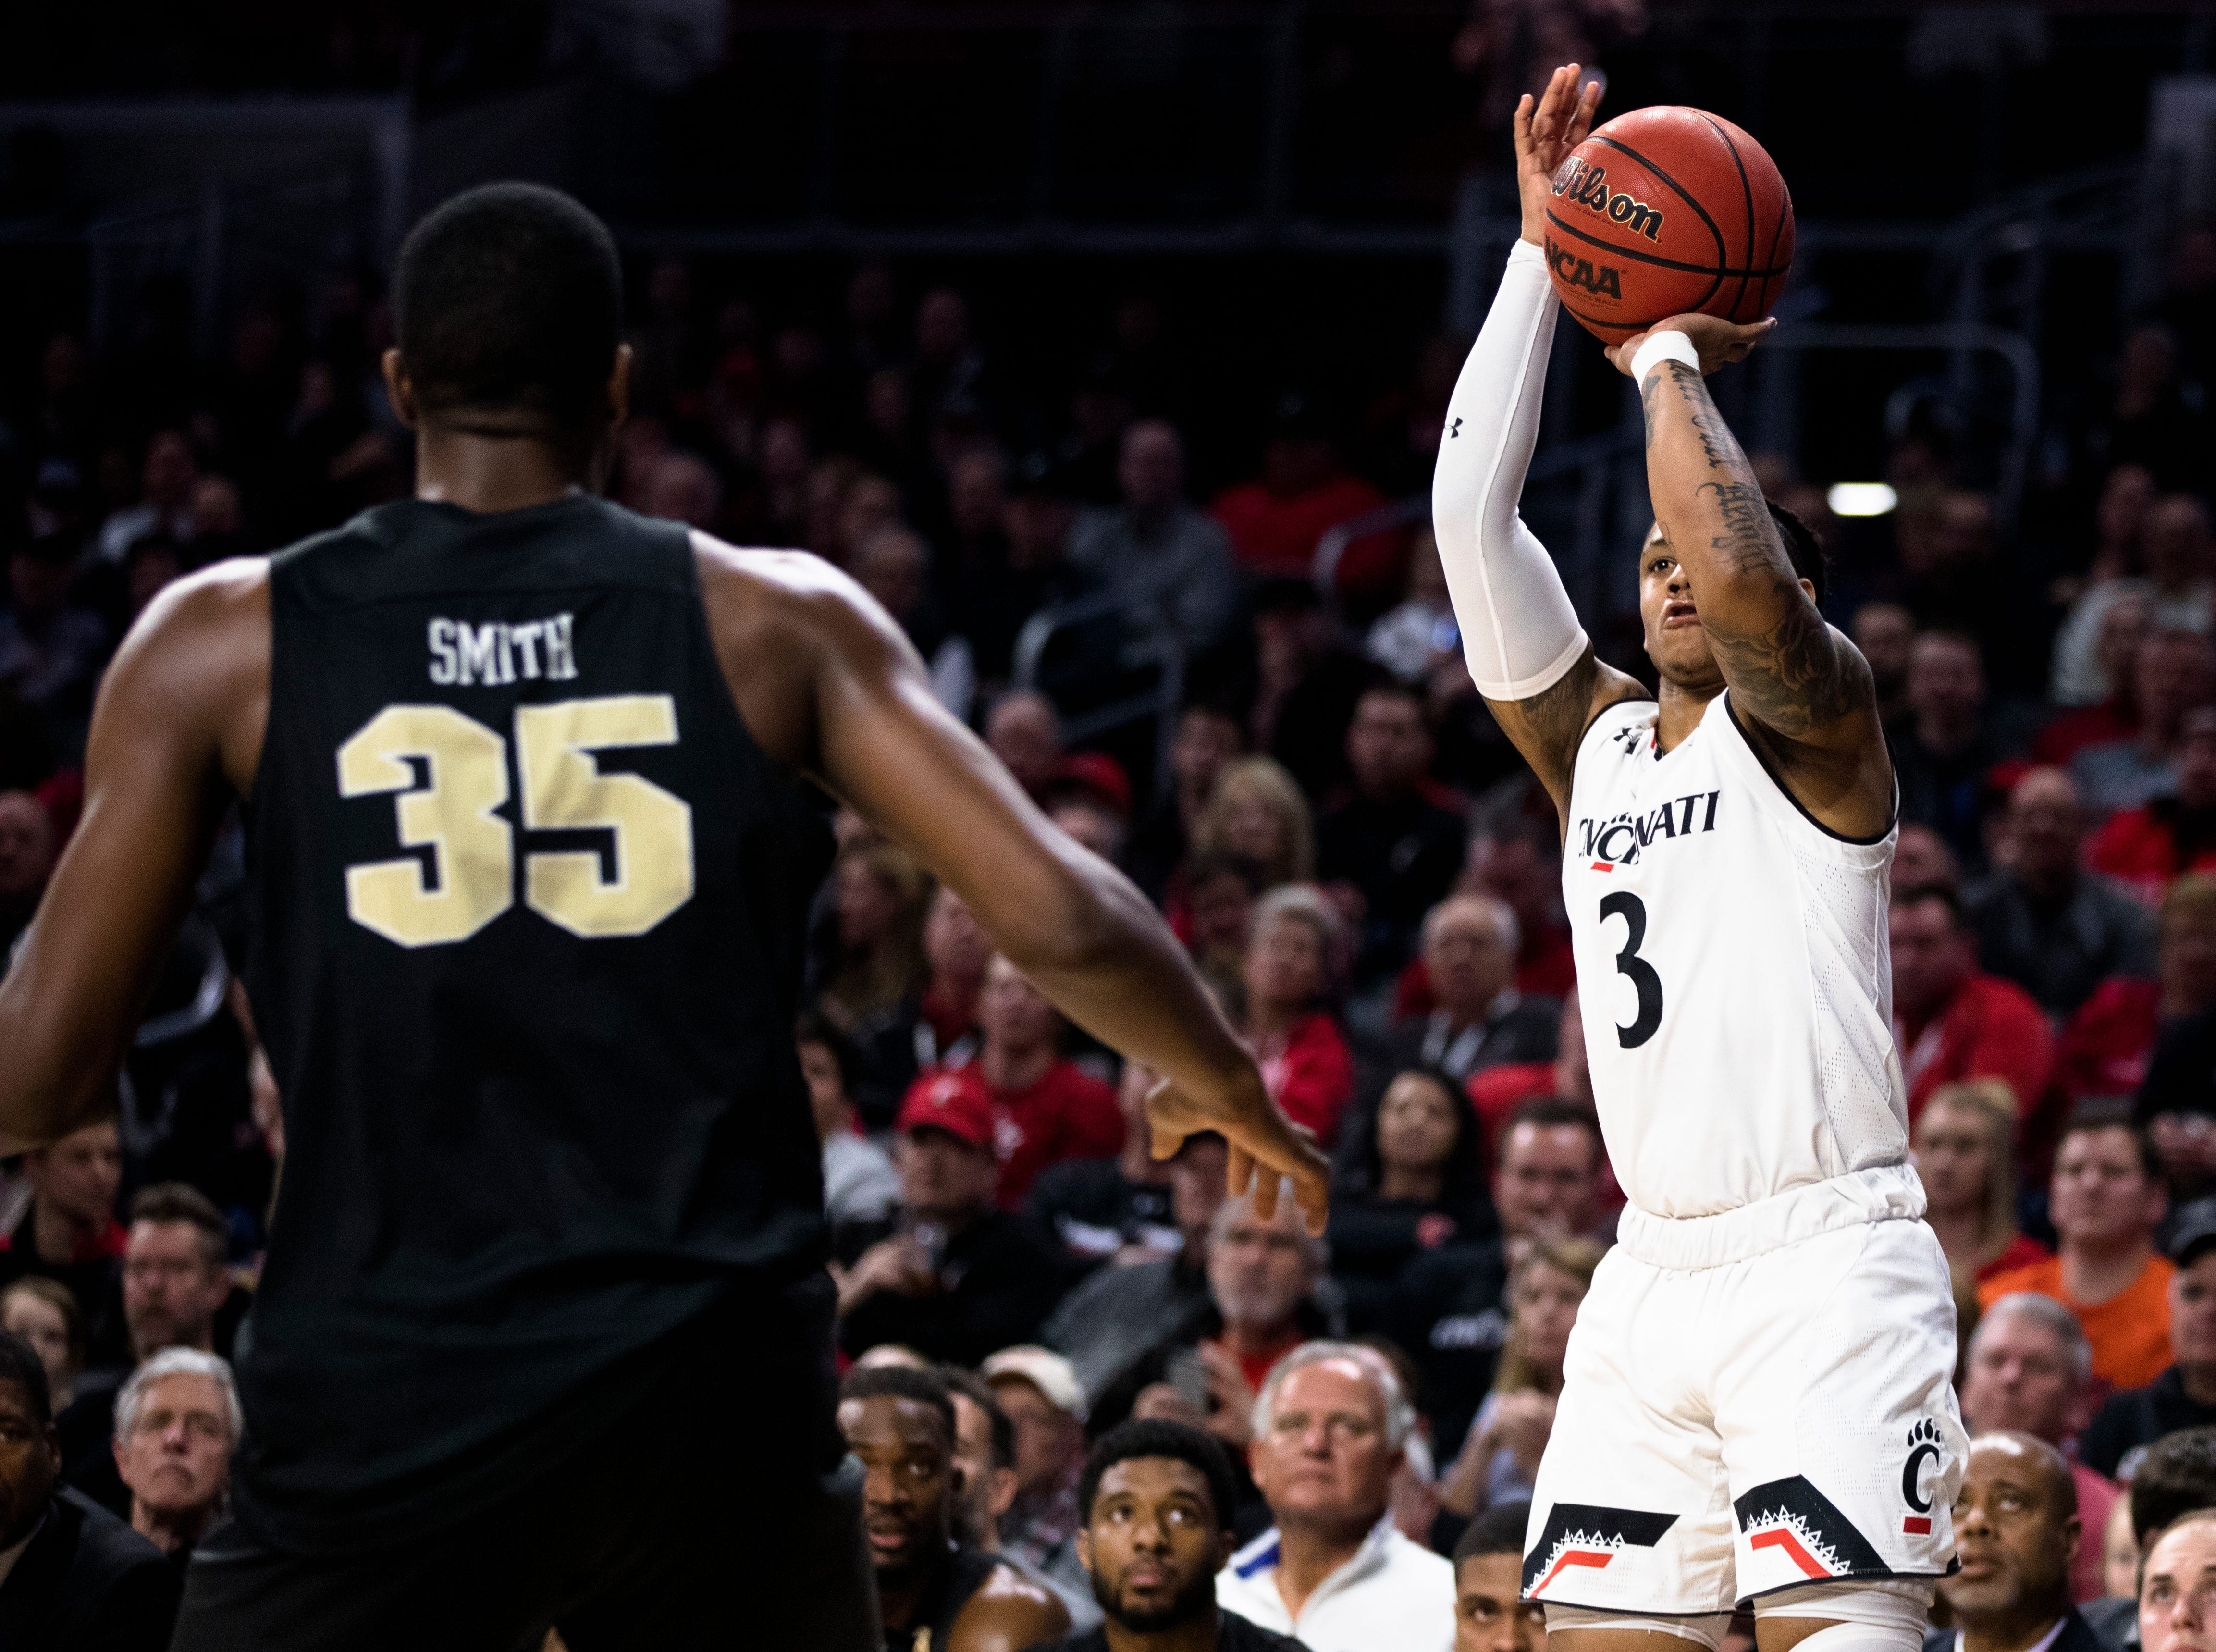 Cincinnati Bearcats guard Justin Jenifer (3) shoots a 3-pointer over UCF Knights forward Collin Smith (35) in the first half of the NCAA men's basketball game between Cincinnati Bearcats and UCF Knights on Thursday, Feb. 21, 2019, at Fifth Third Arena in Cincinnati.